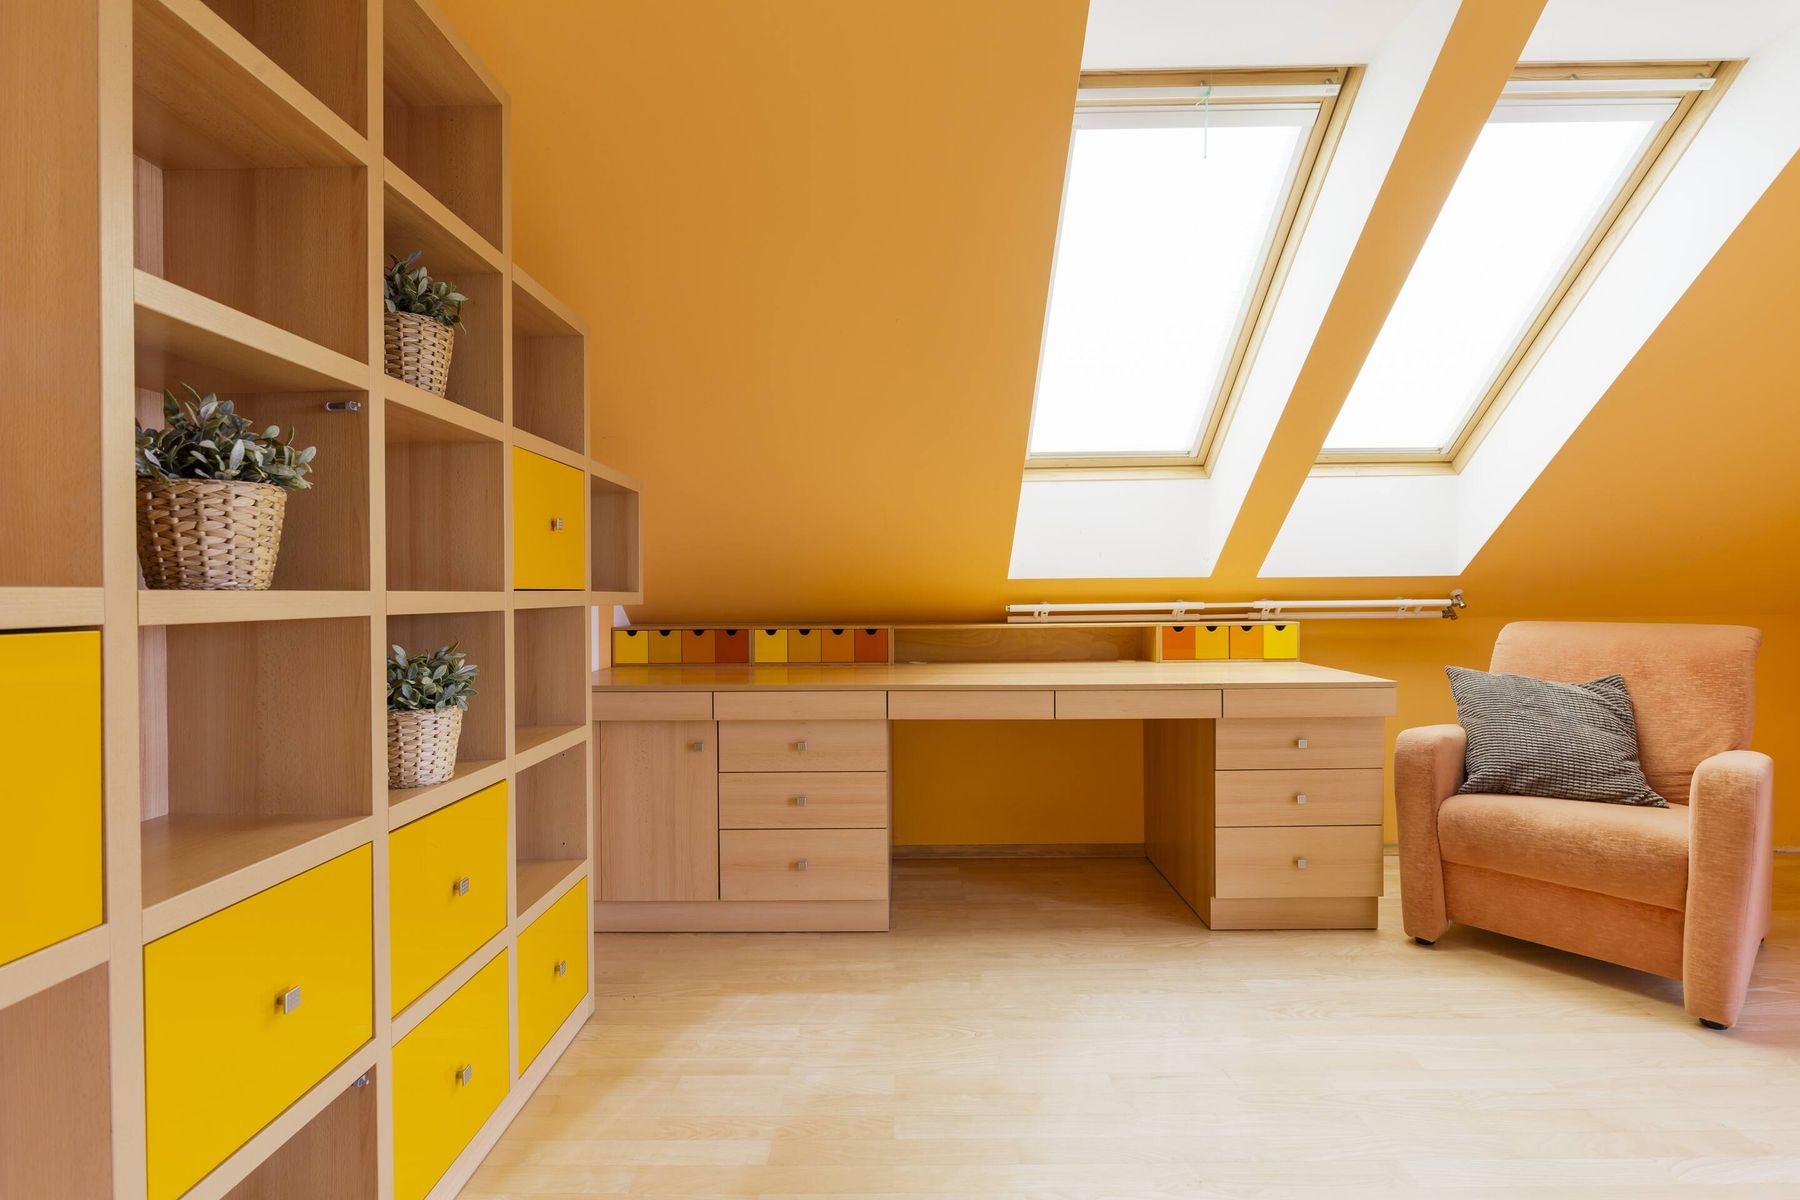 Loft conversion ideas, dos and don'ts